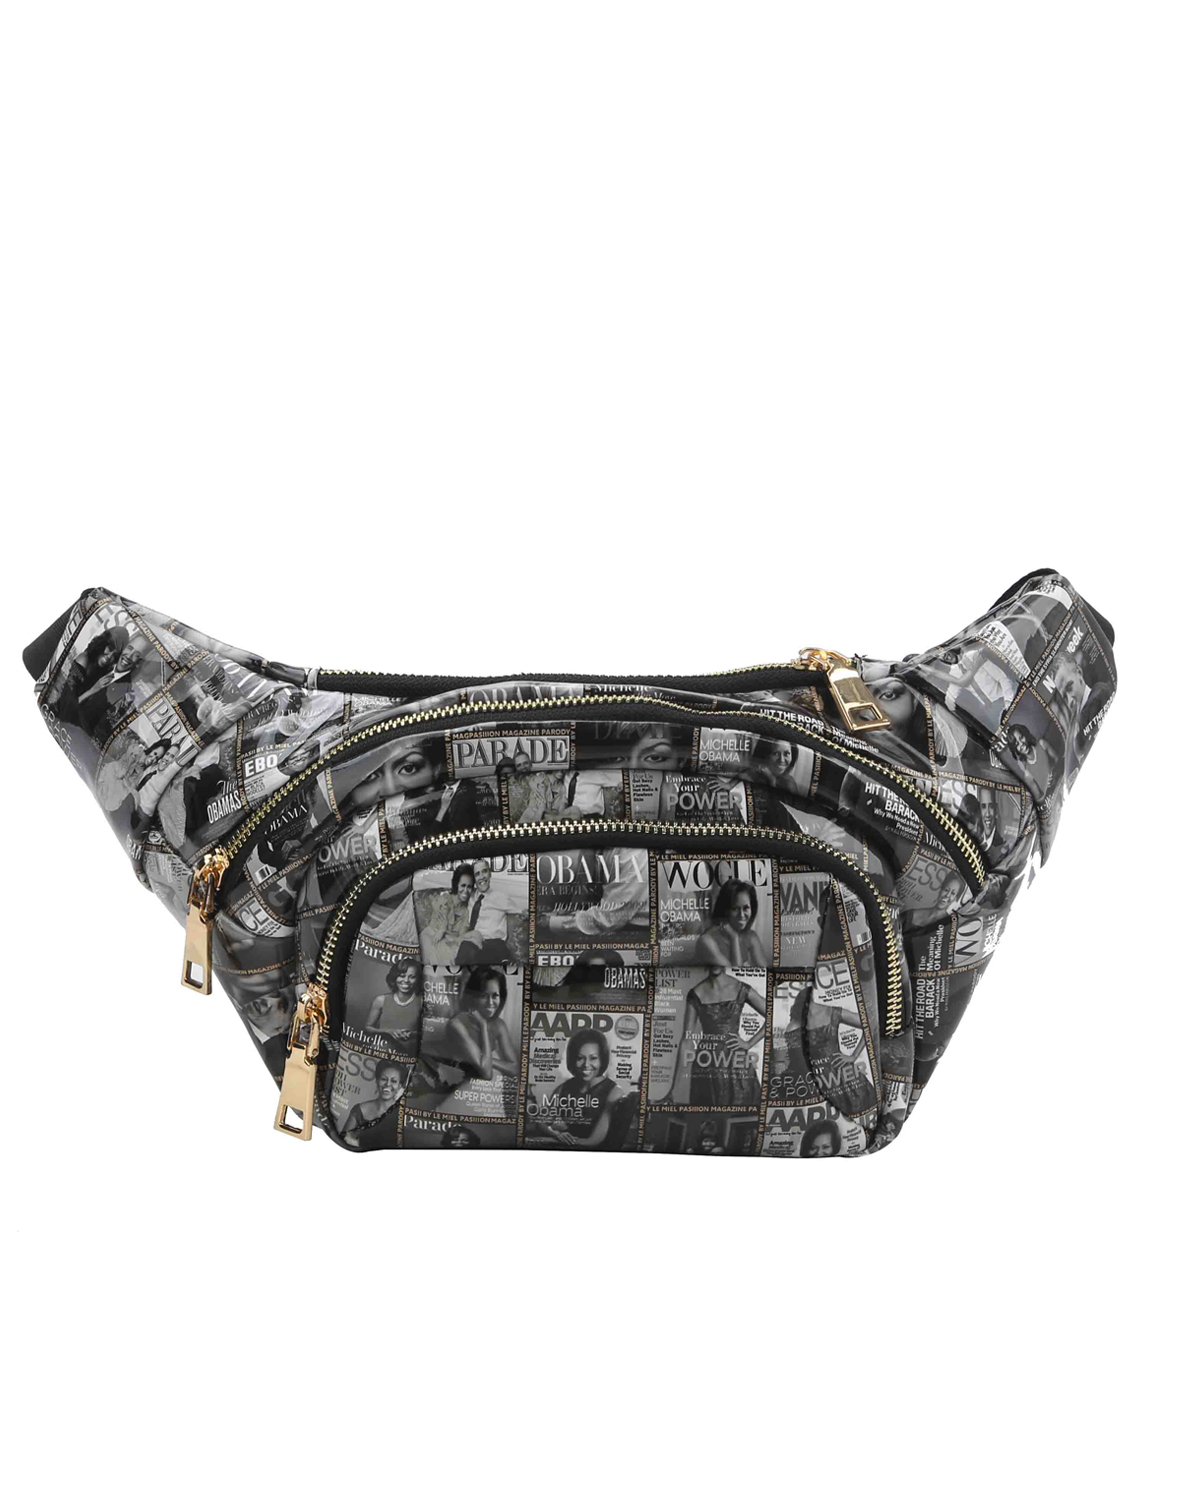 PQS005(BKWT)-wholesale-fanny-pack-waist-bag-michelle-barack-obama-magazine-patent-faux-leather-buckle-gold-pocket(0).jpg